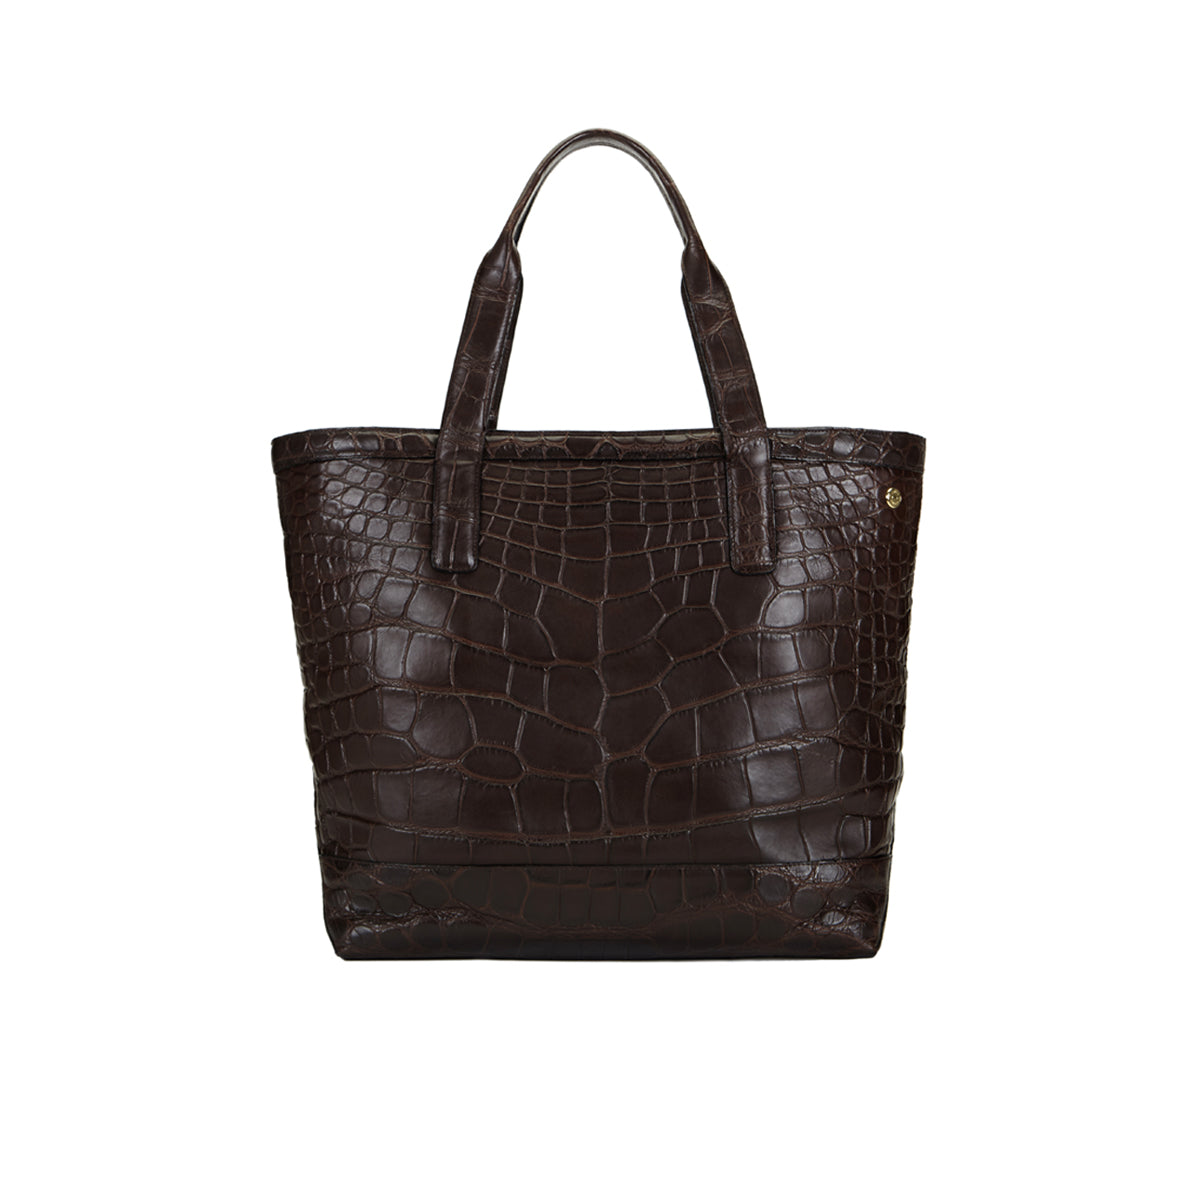 Carreon Soft Open Tote - Brown Alligator